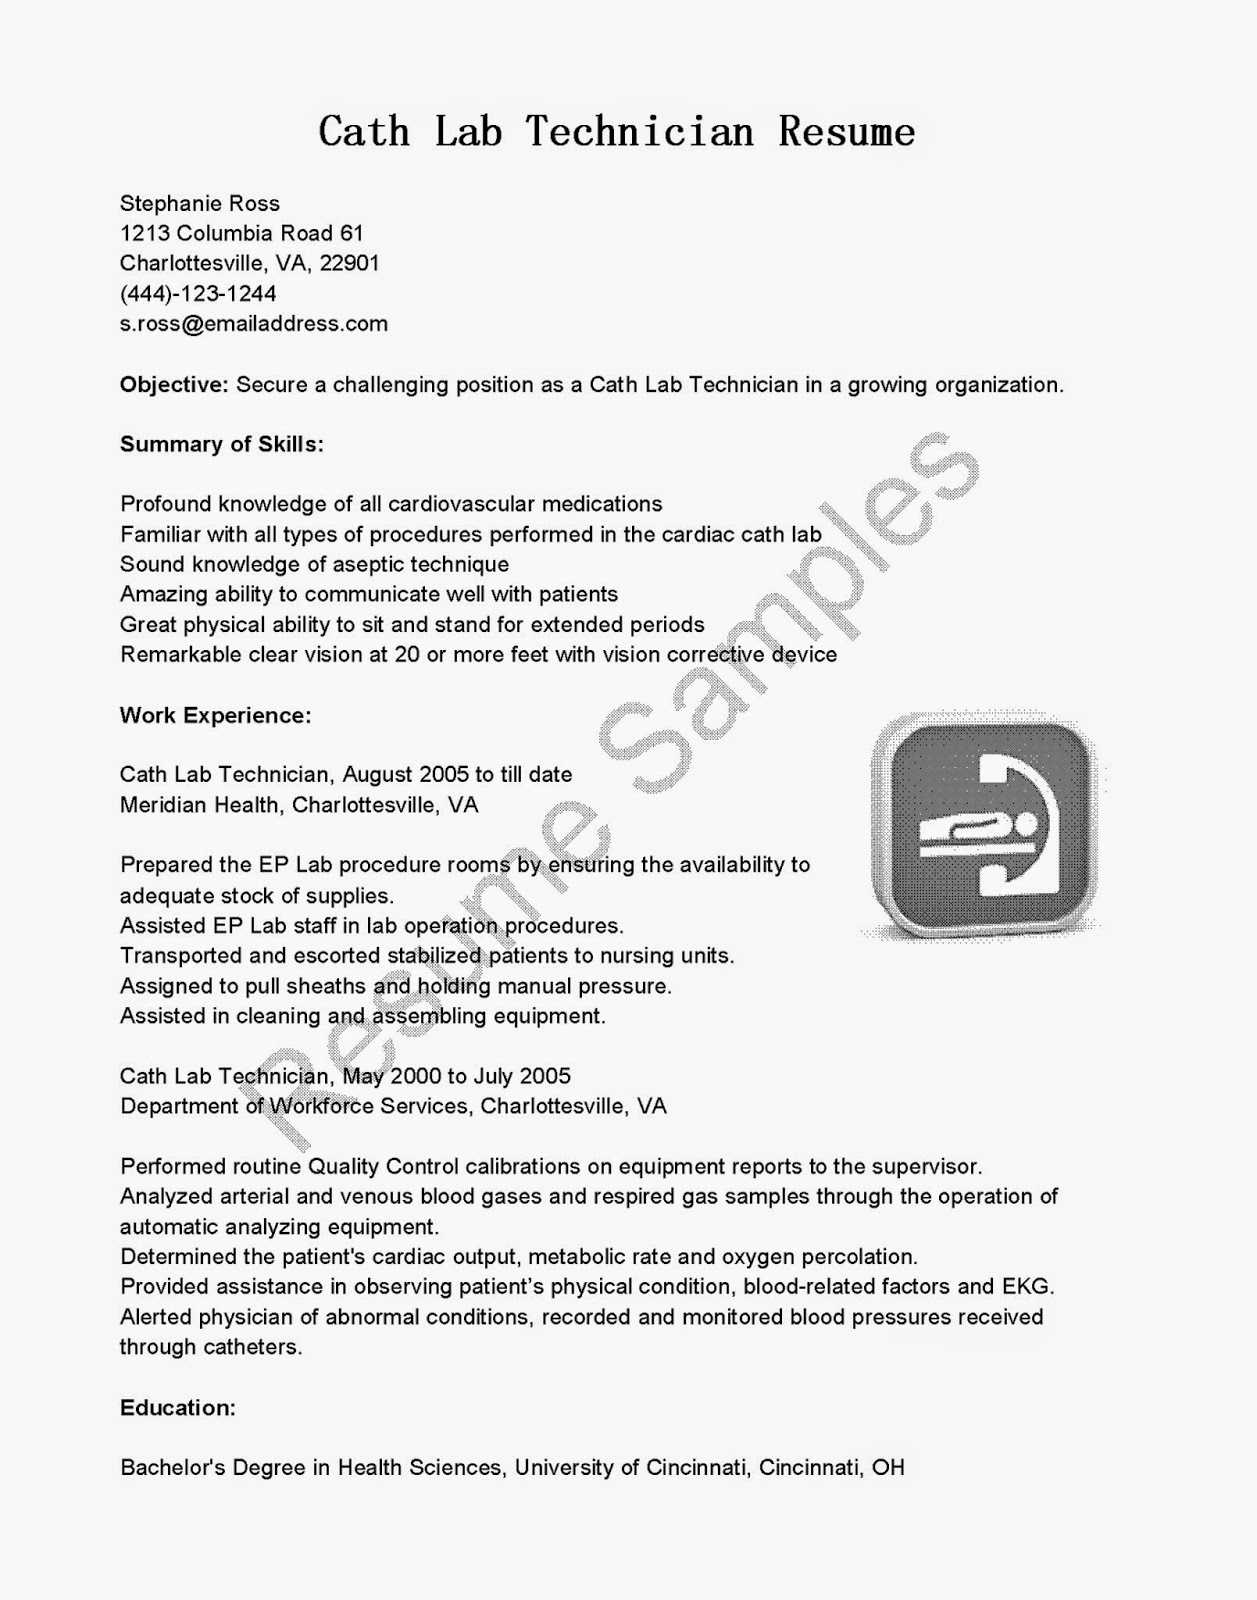 business telecommunications technician resume page carpinteria rural friedrich - Network Technician Sample Resume